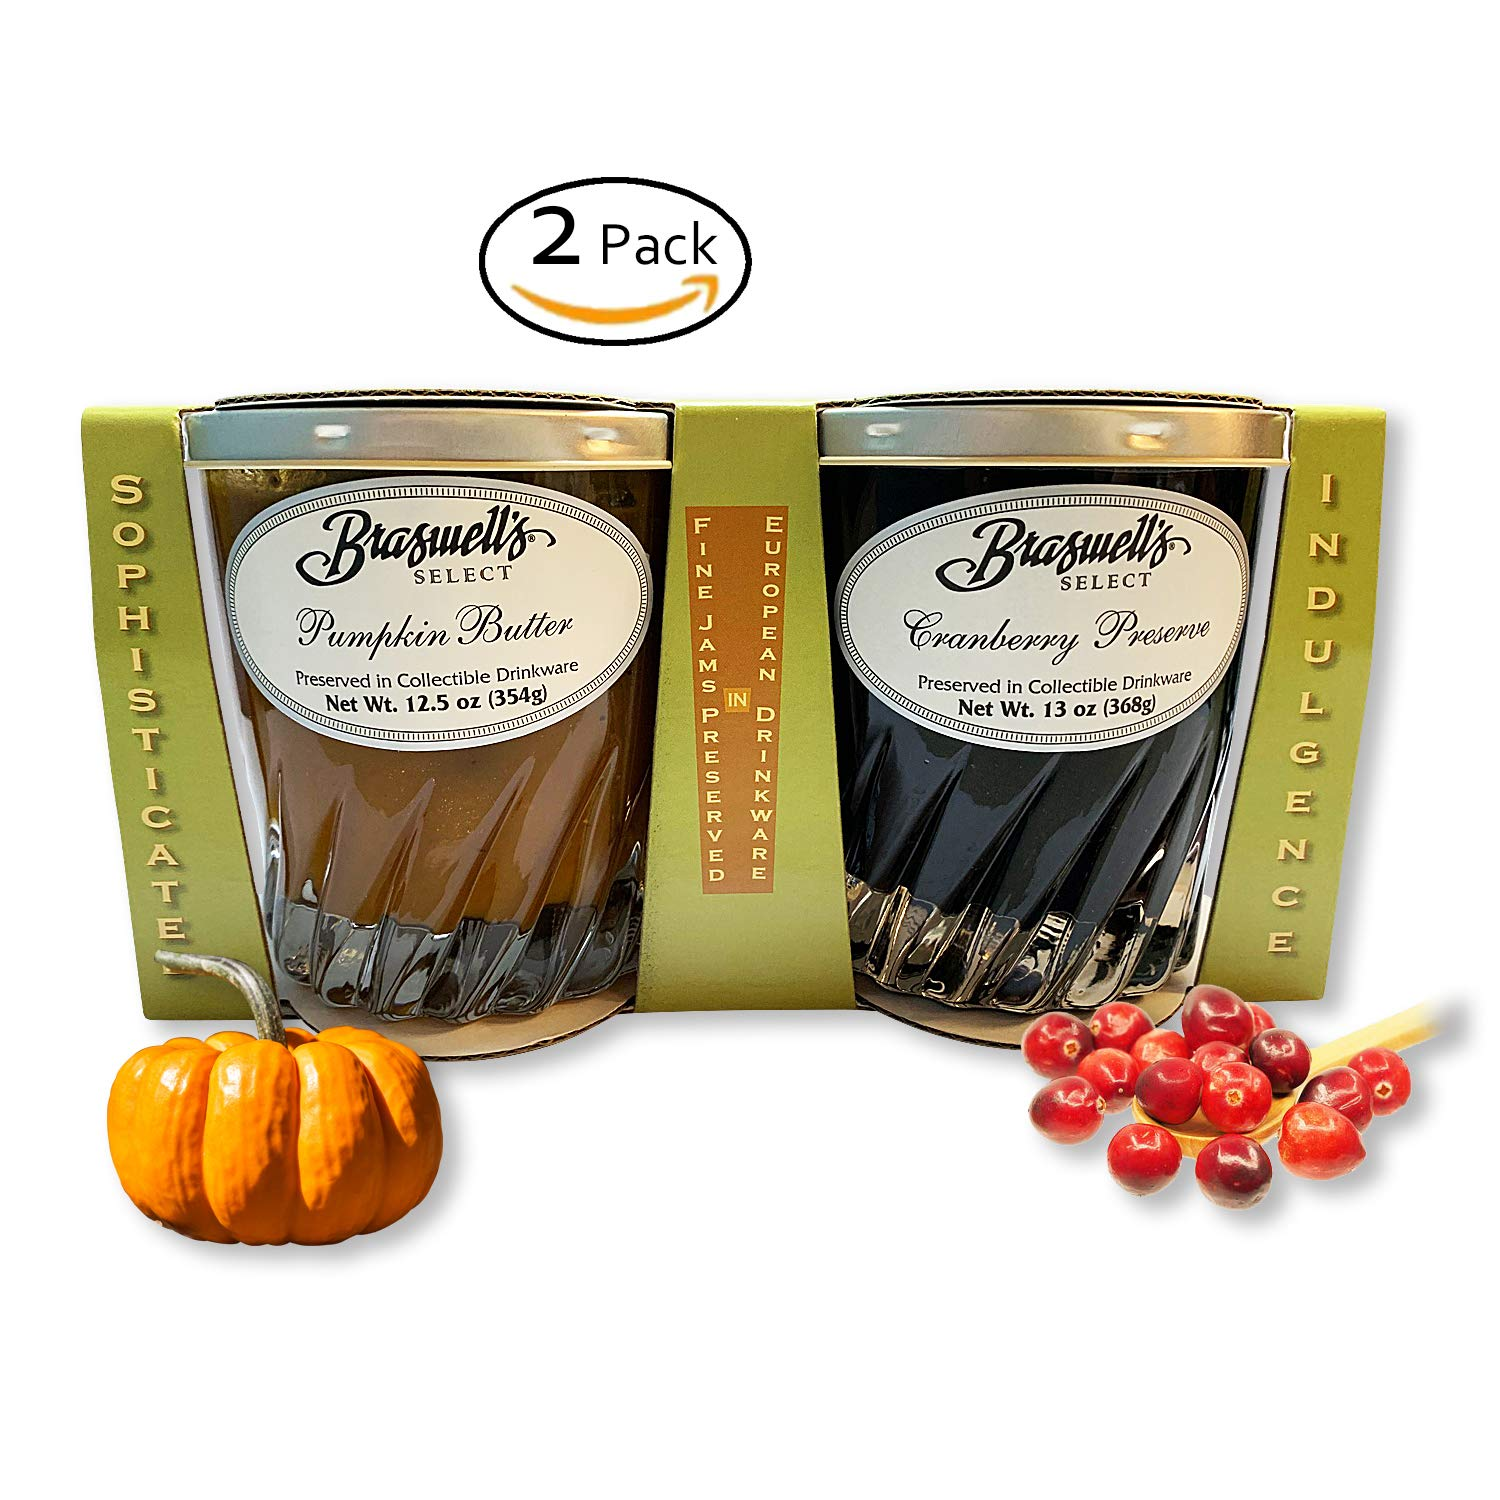 Braswell Perfect Pumpkin Butter Spread and Cranberry Preserves in European Collectible Drinkware - Limited Holiday Collection-Sweet and Delicious-Great For Thanksgiving and Entertaining by Cool Gadget Gift